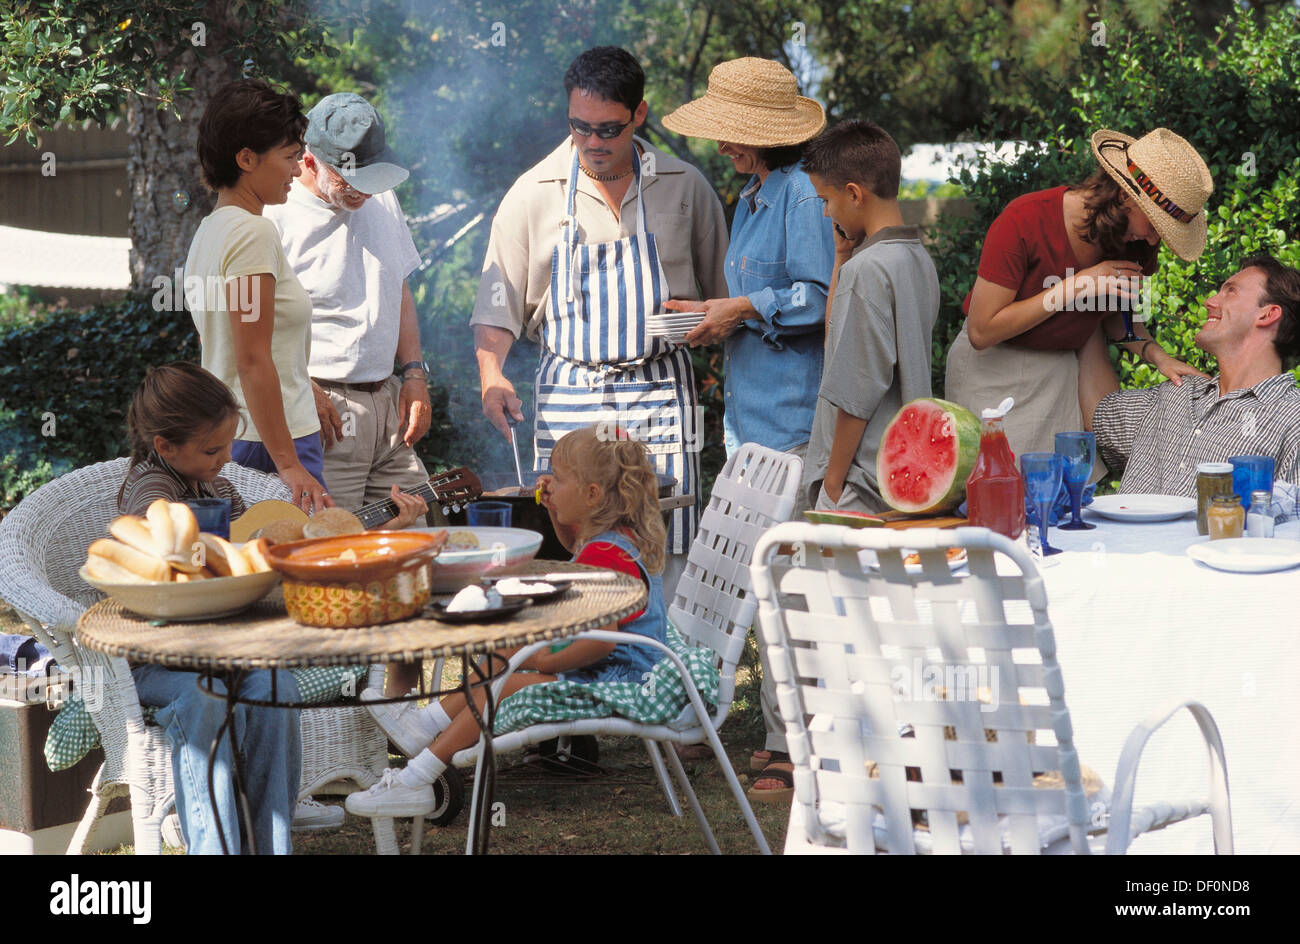 barbecue with family friends and neighbors in backyard stock